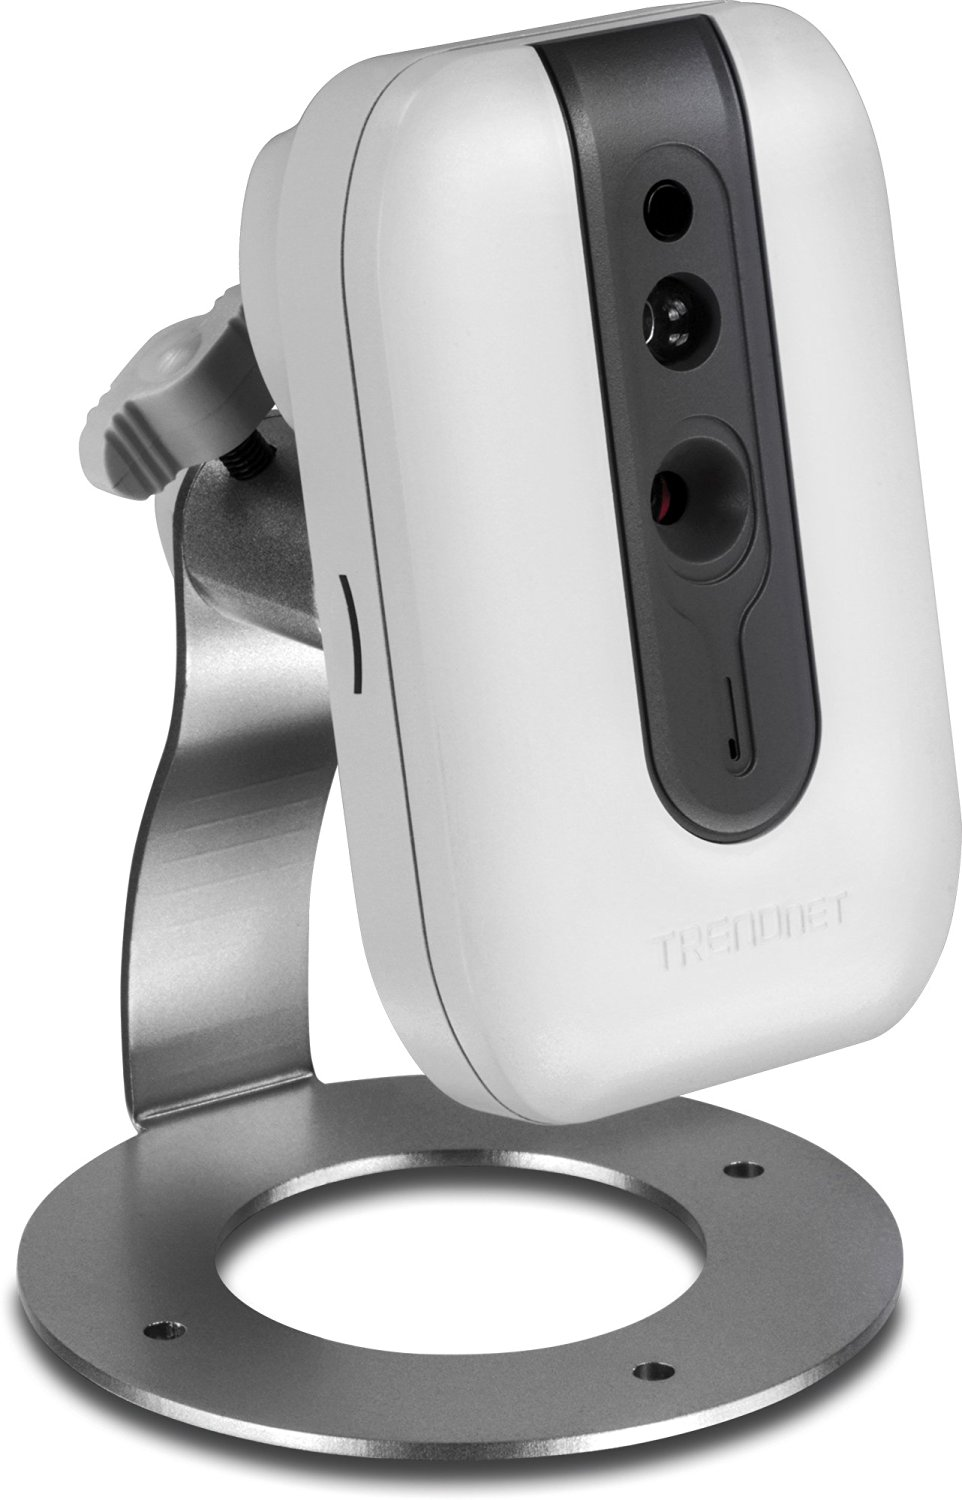 TRENDnet TV-IP762IC Wireless Cloud Surveillance IP Camera 720p HD